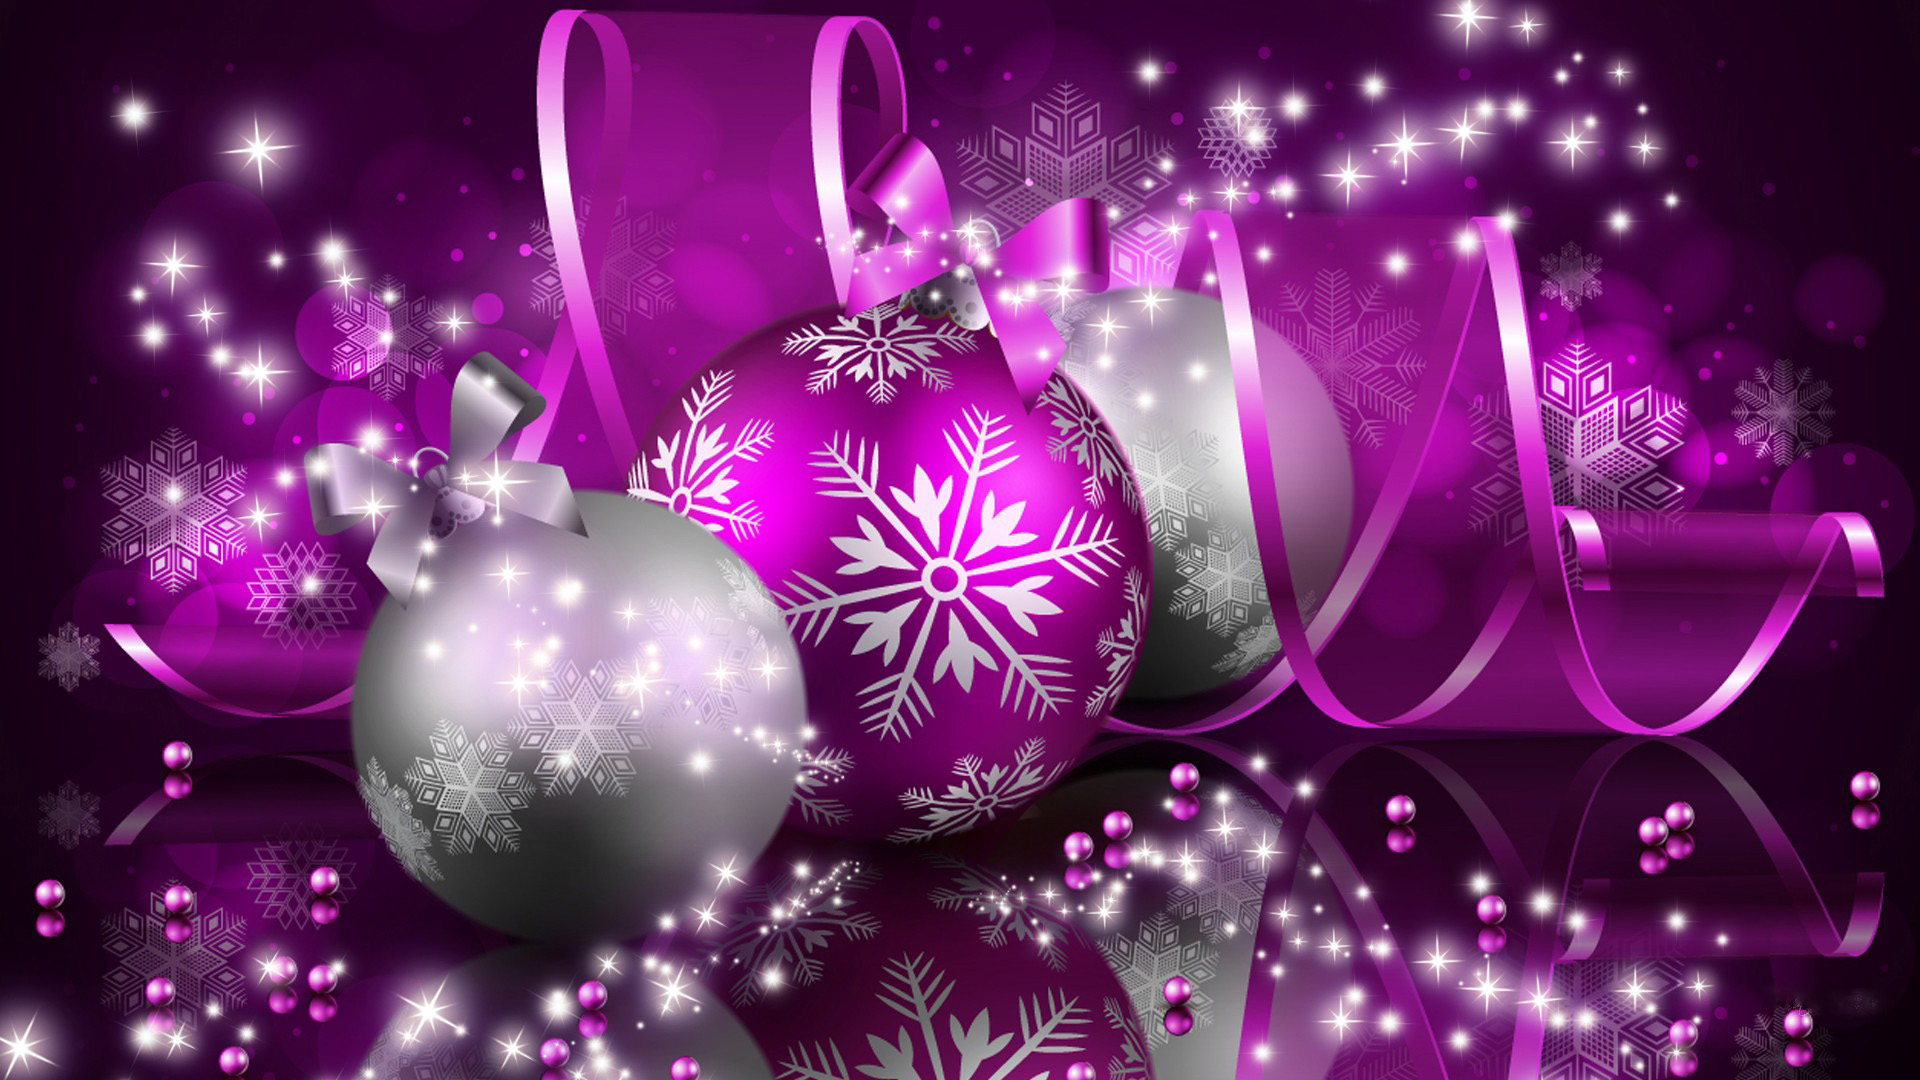 happy christmas purple silver balls new hd wallpaper